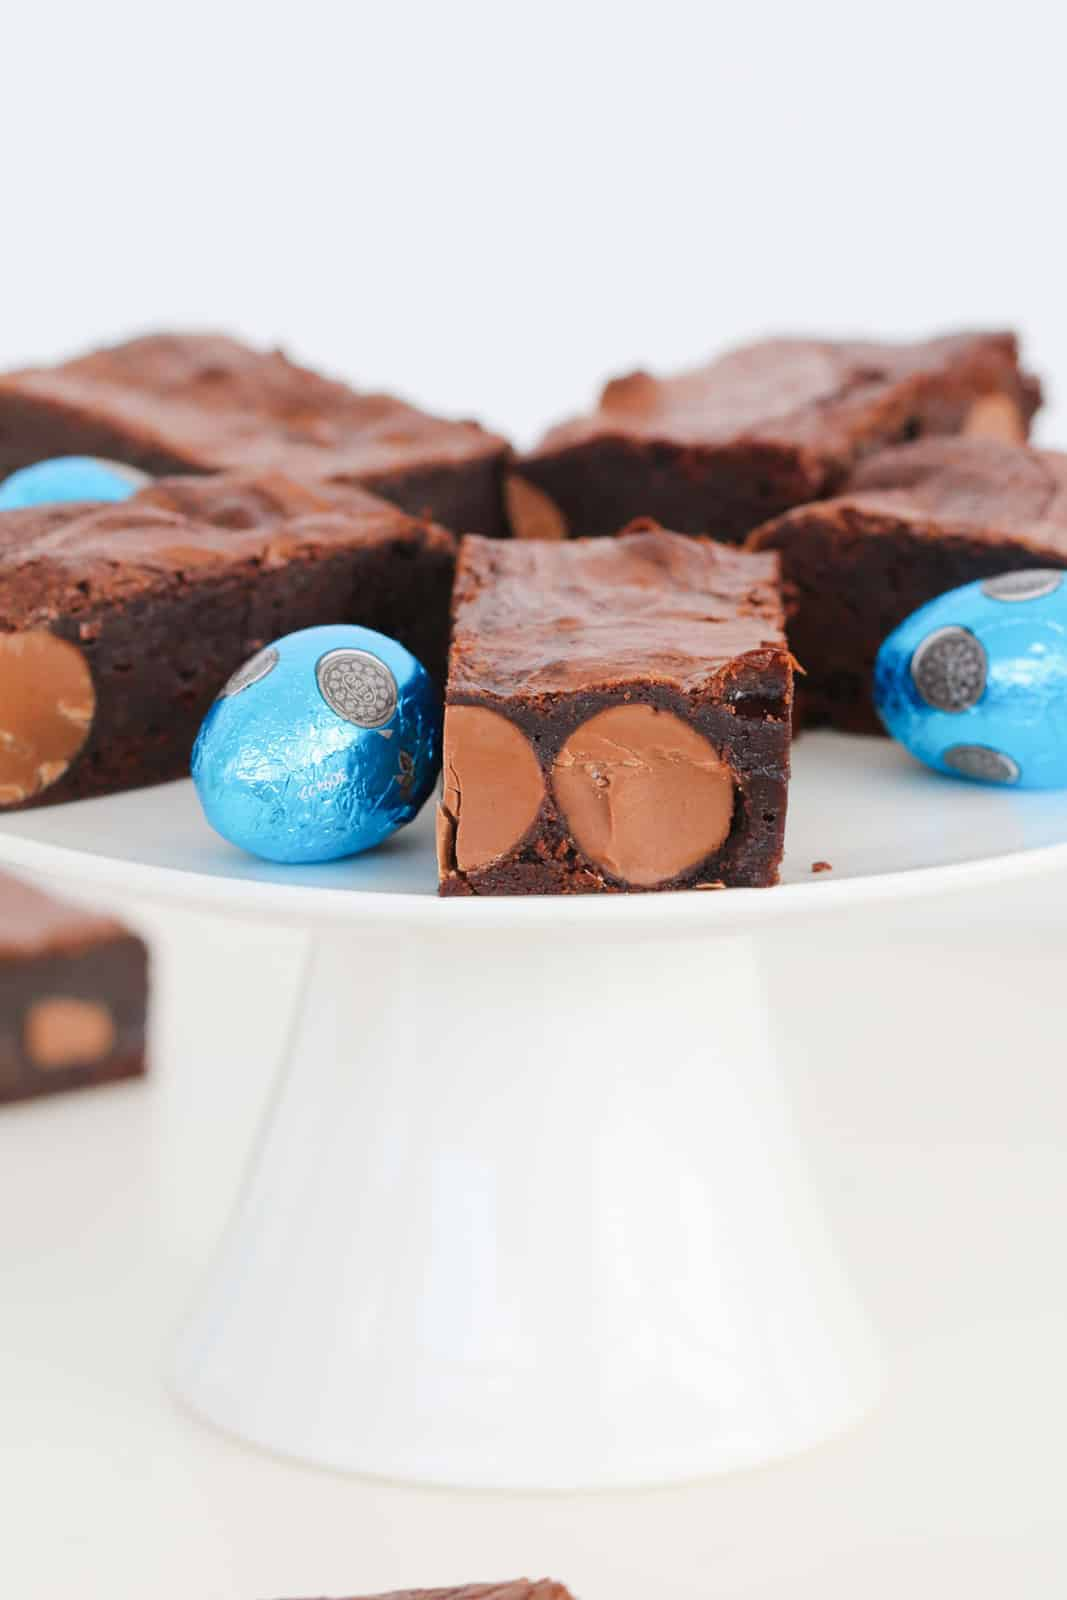 A white cake stand topped with moist brownies filled with Easter eggs, and more wrapped Easter eggs to decorate around brownie pieces.